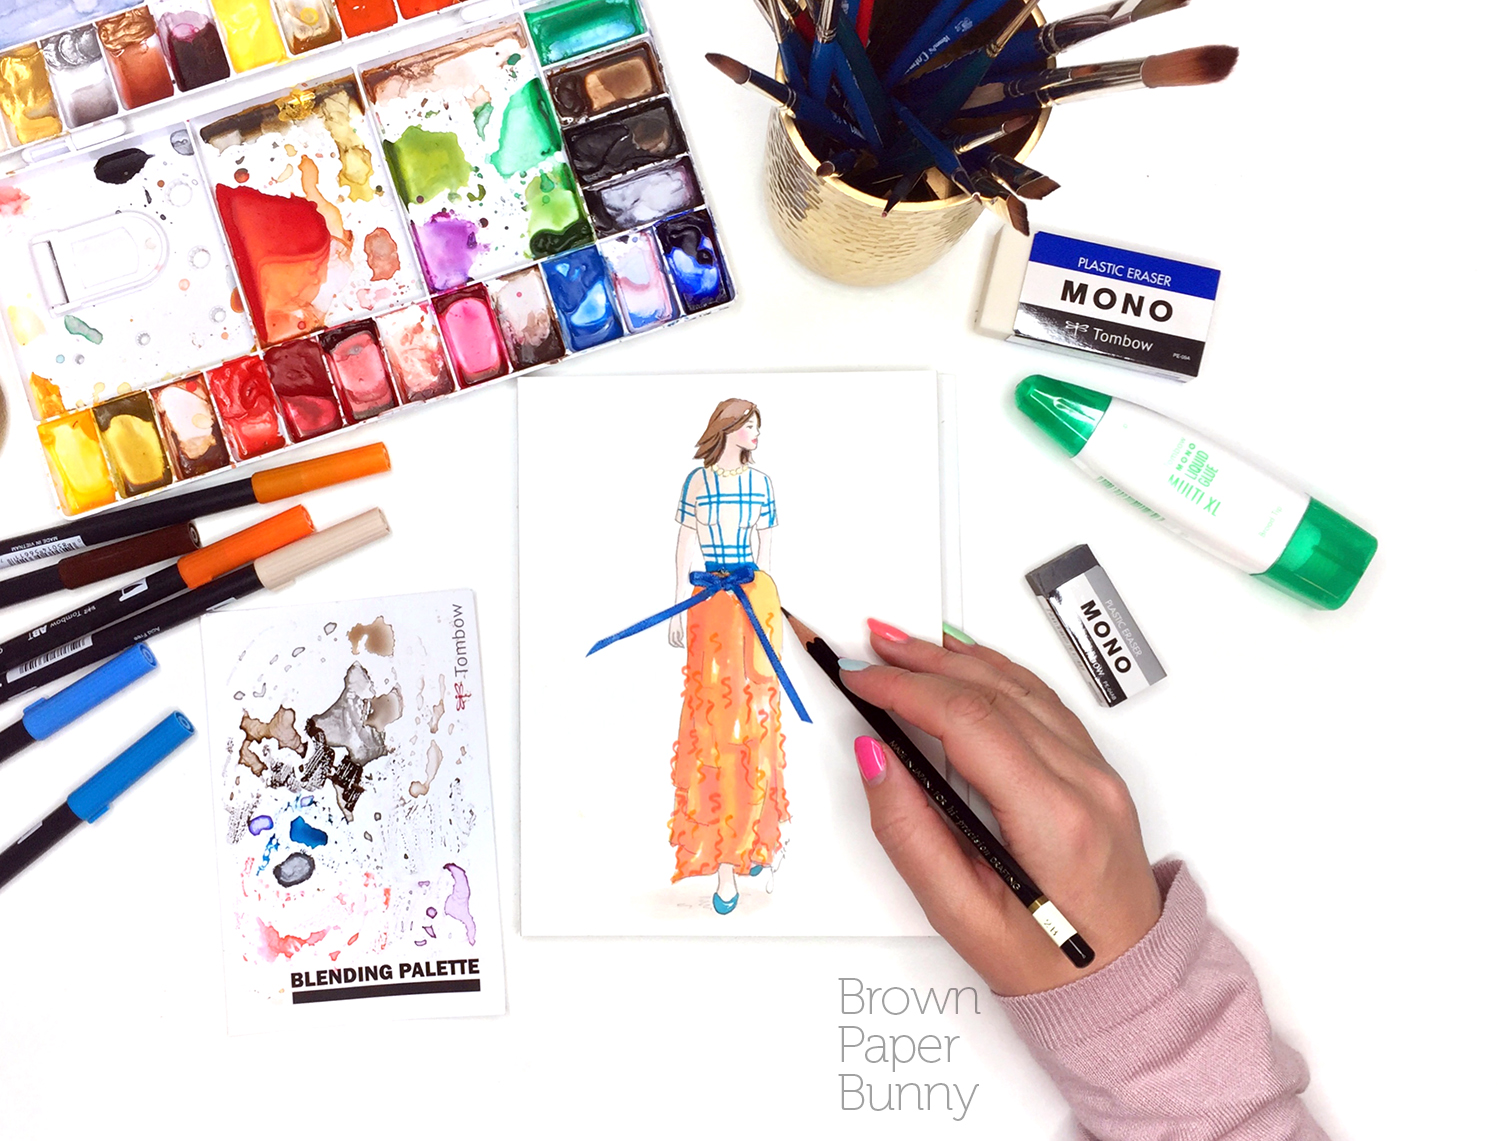 Ink fashion illustration created for Tombow, as part of a Fashion Week campaign.